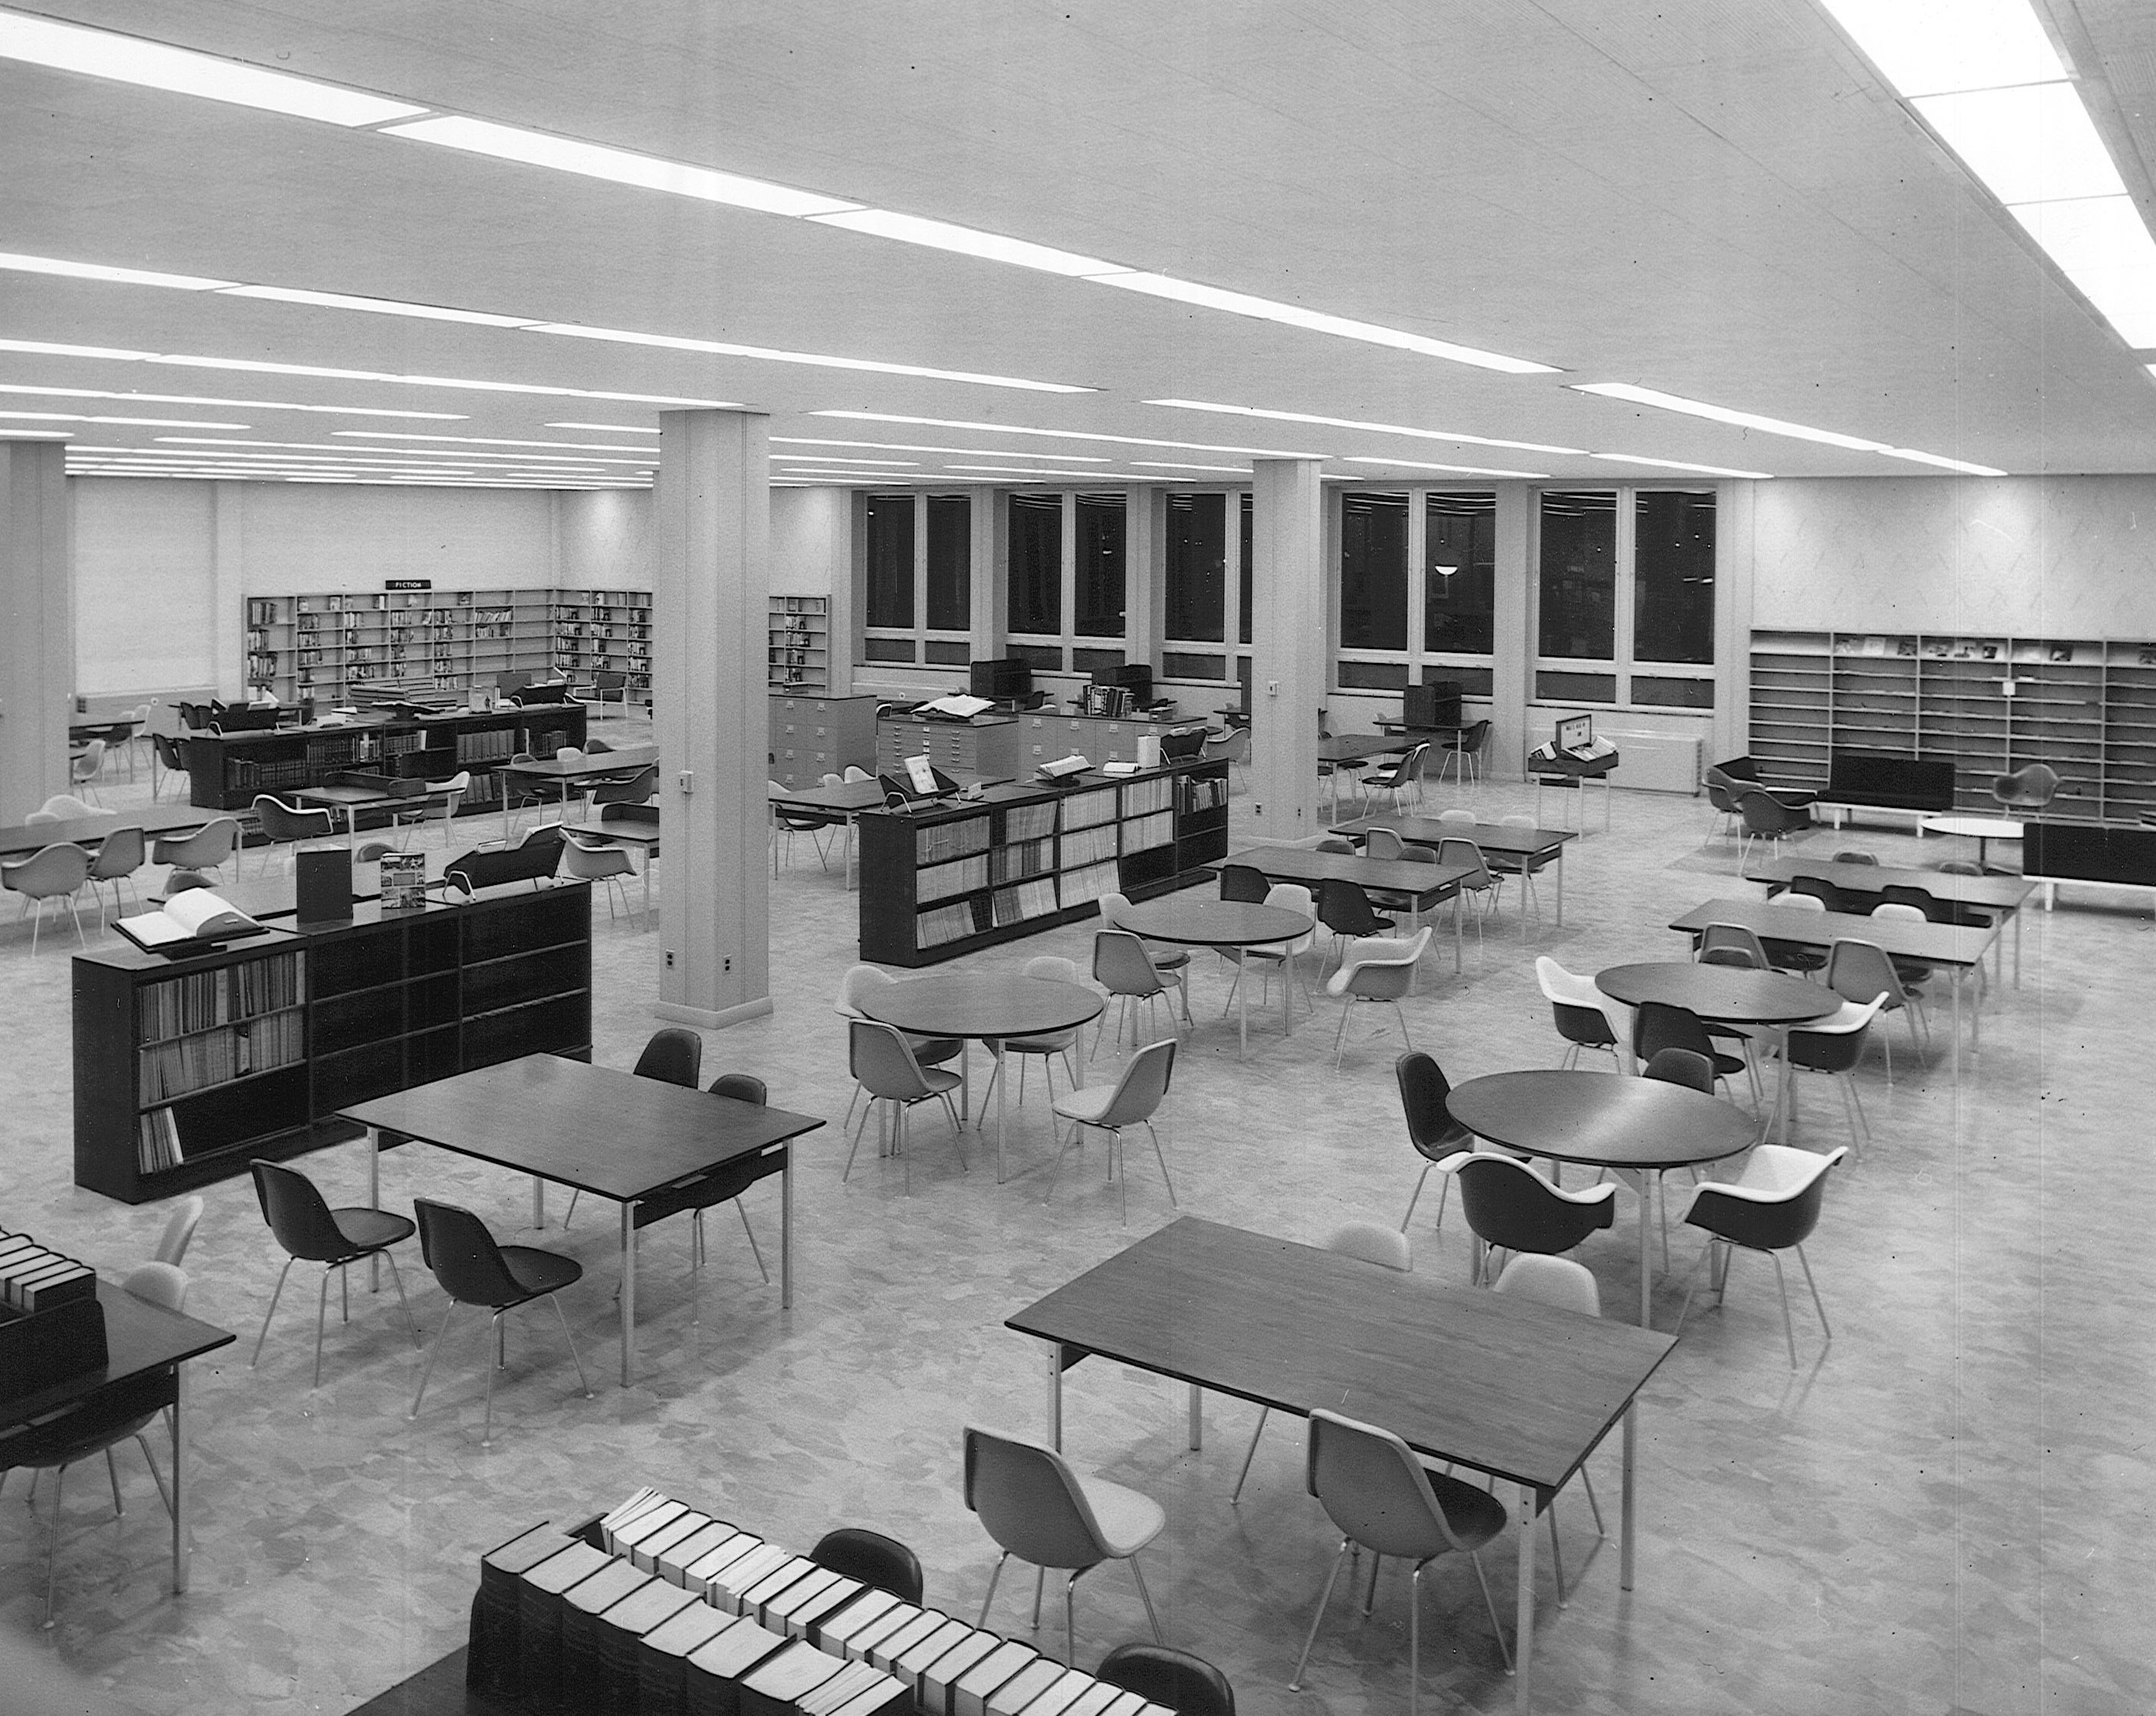 North Campus library reading room, c. 1960s.